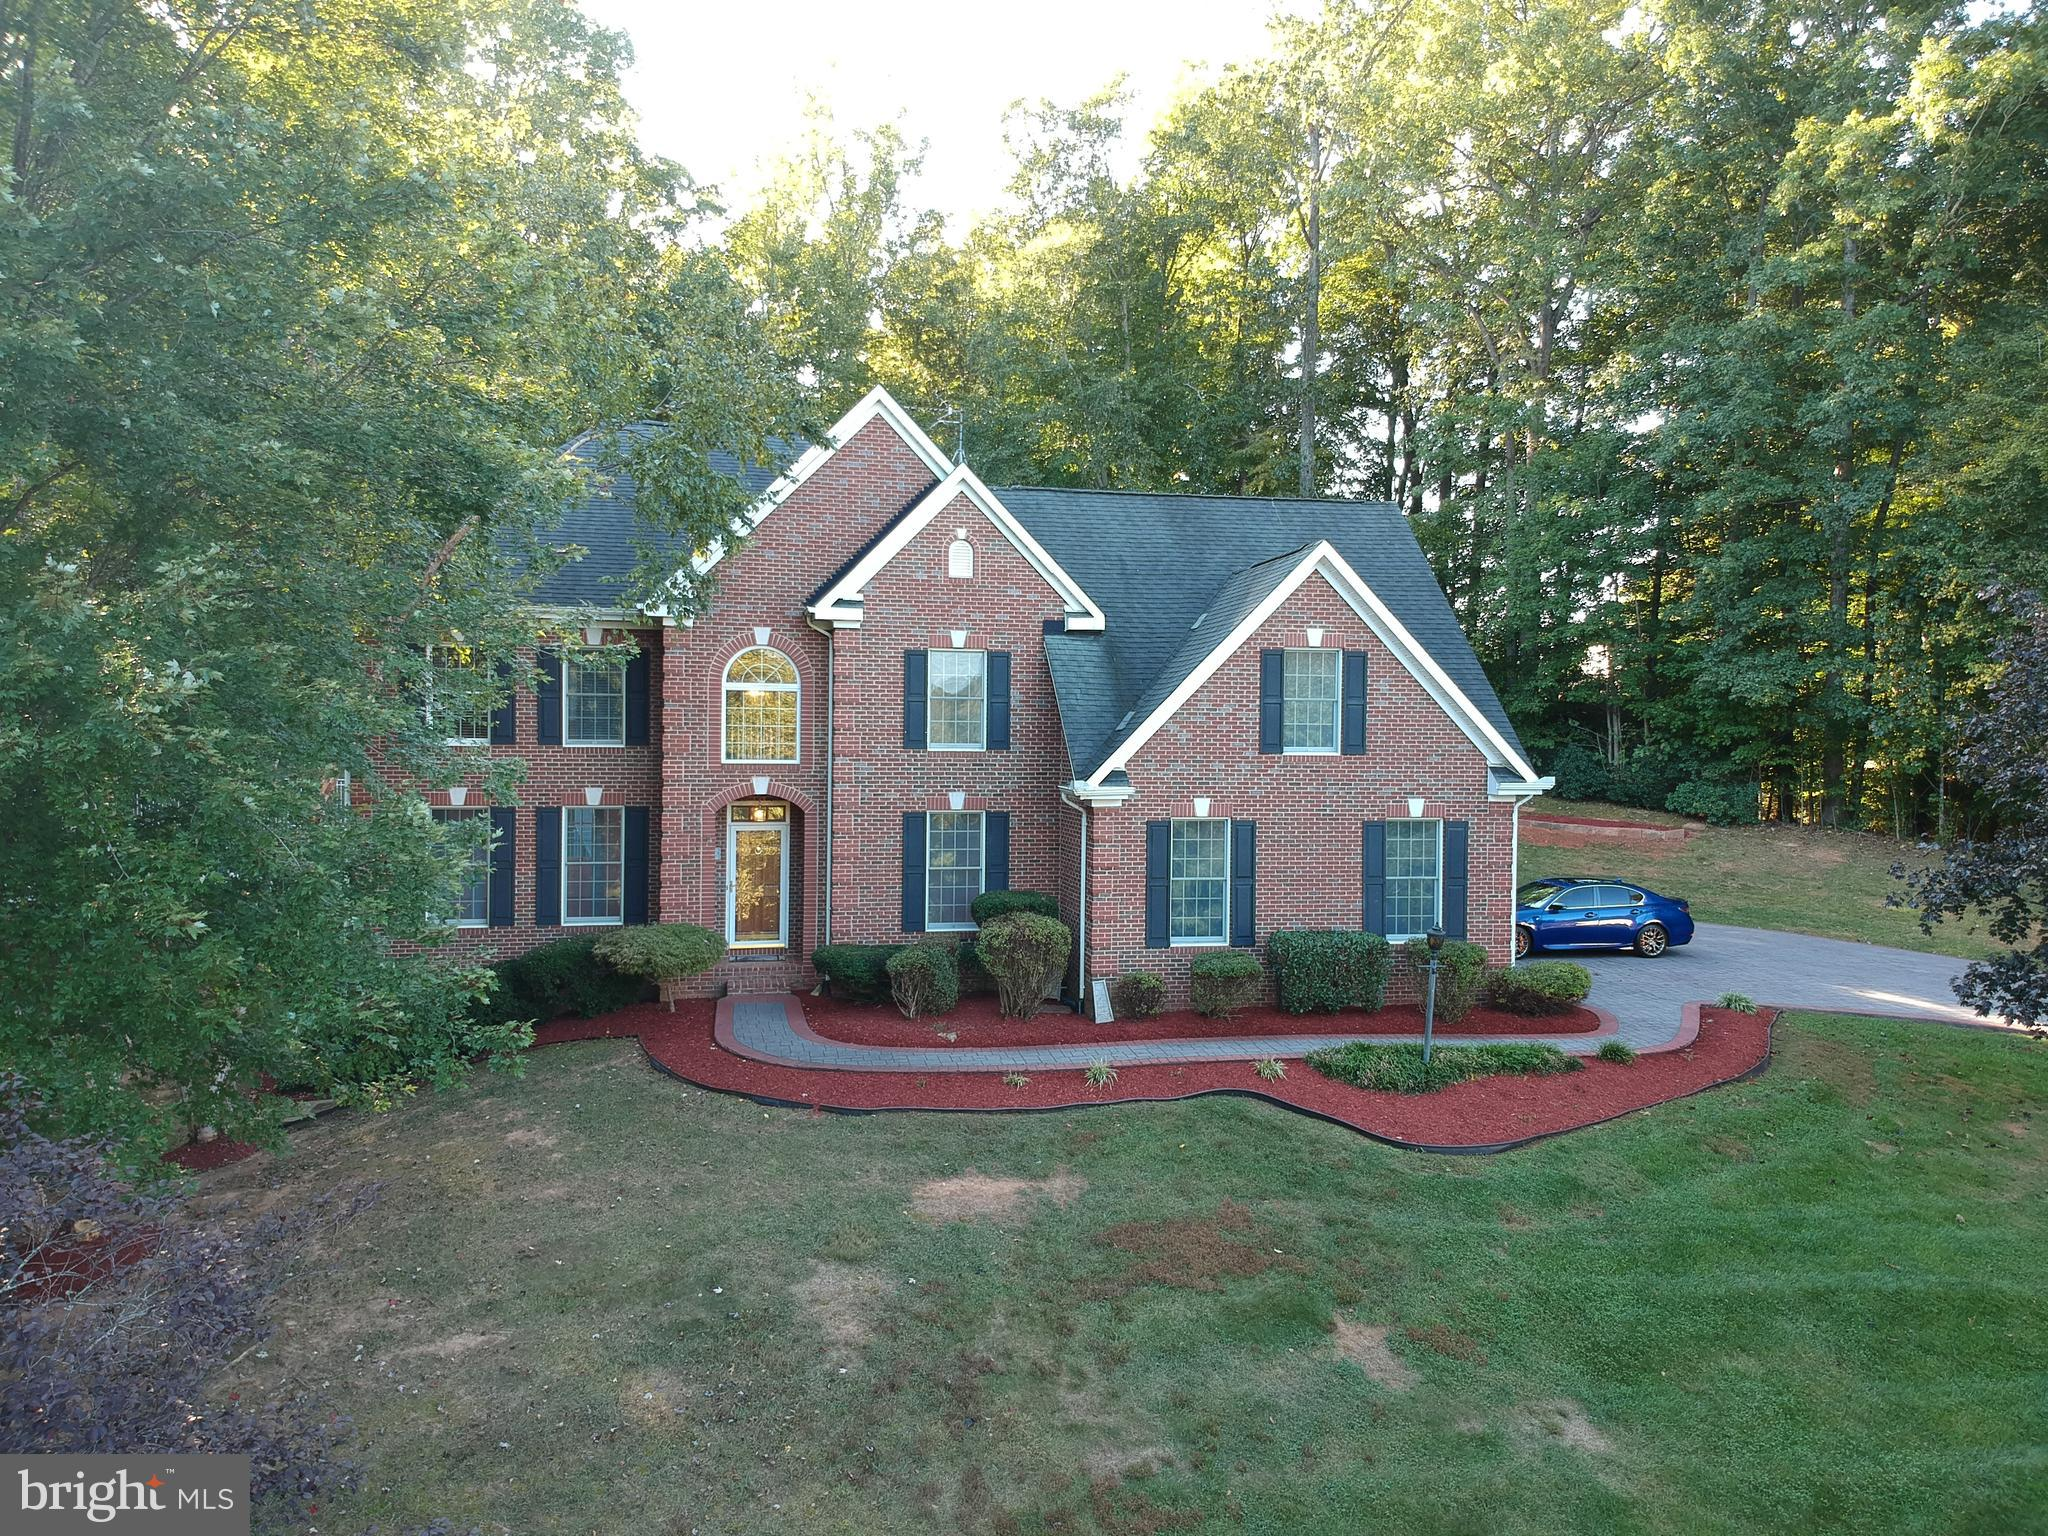 12032 BANK BEAVER COURT, MANASSAS, VA 20112